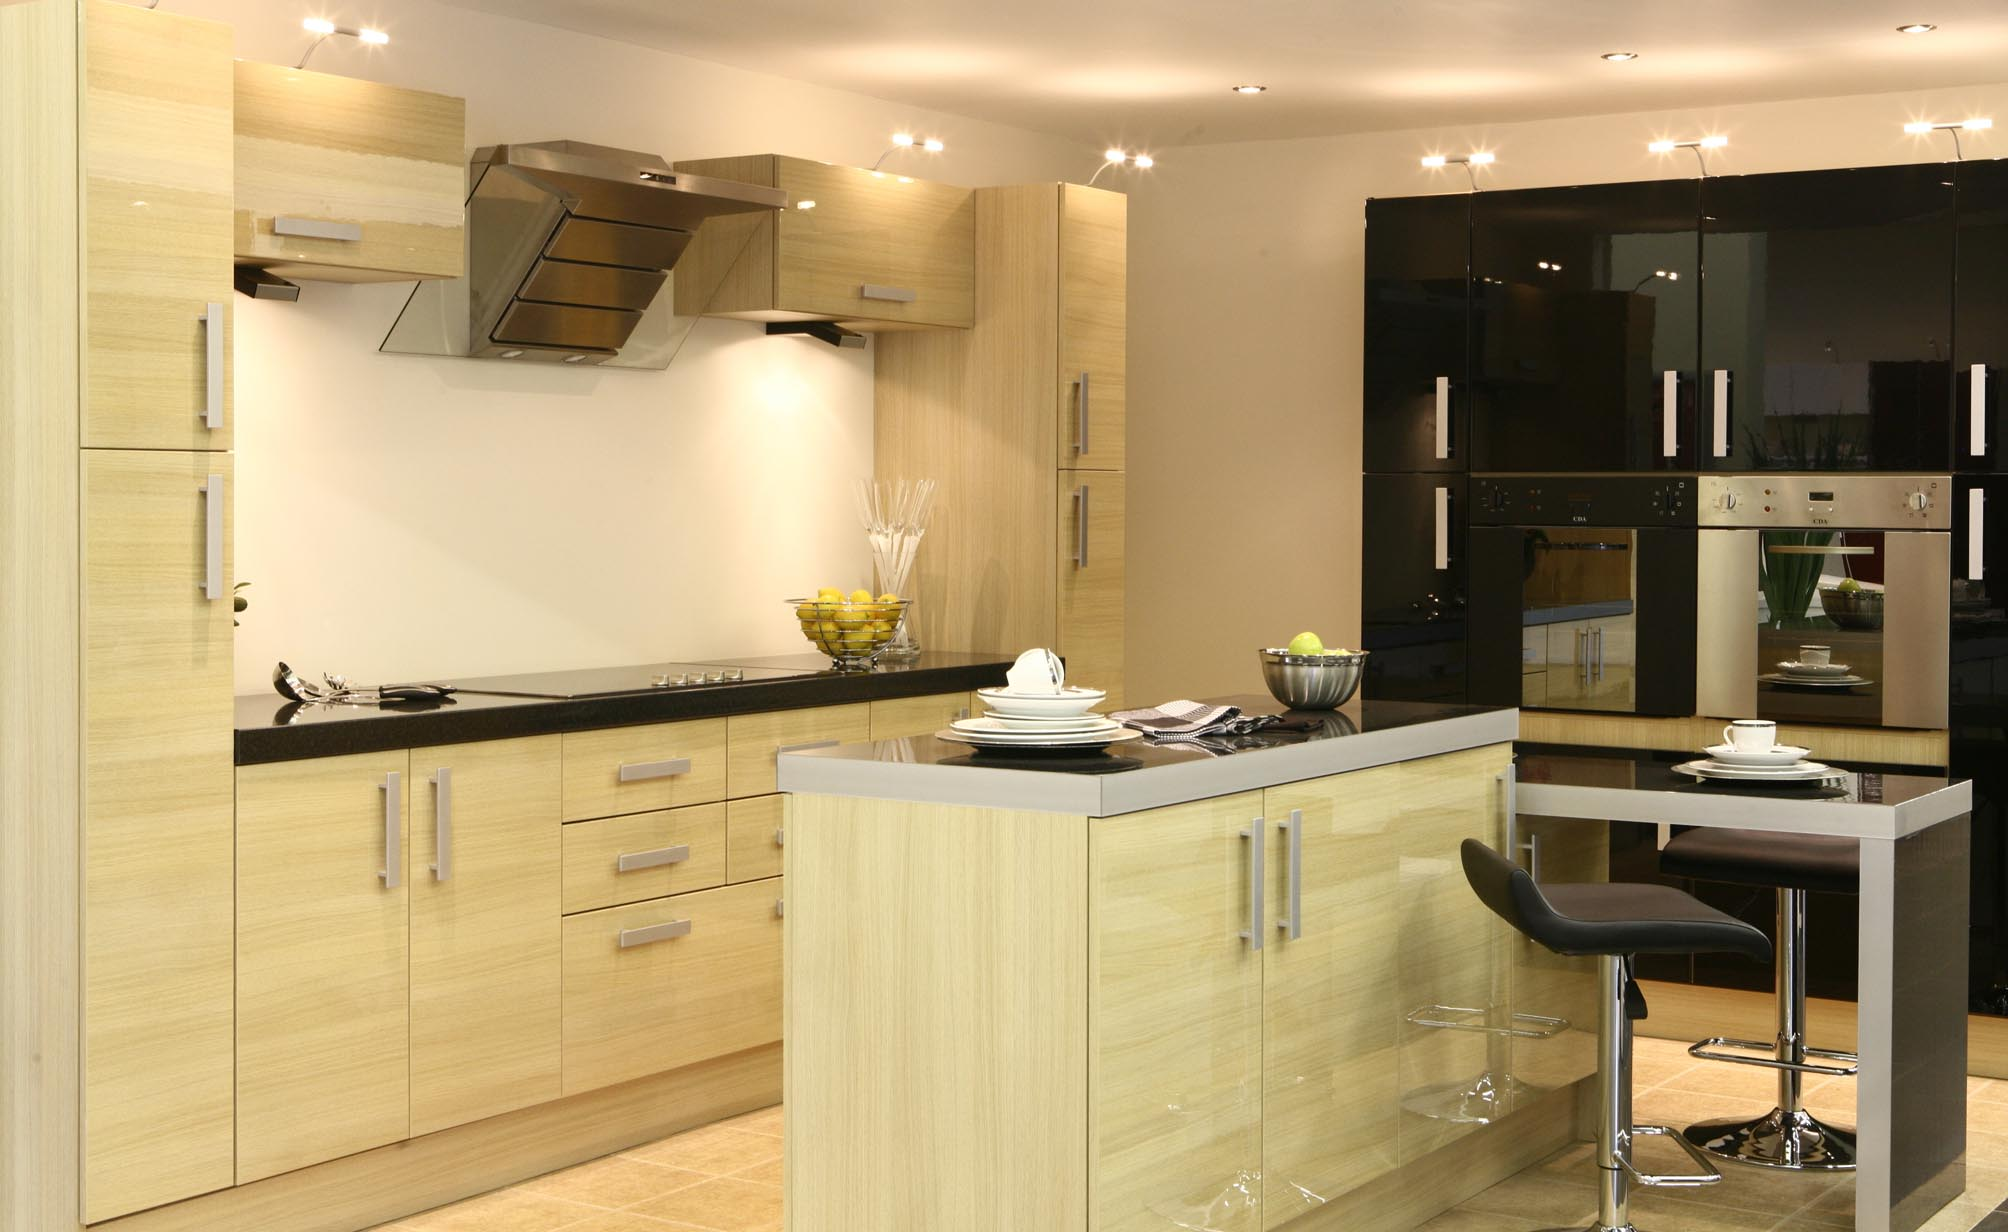 Small Kitchen Design with Wooden Furniture Wooden Island and Lighting Decoration